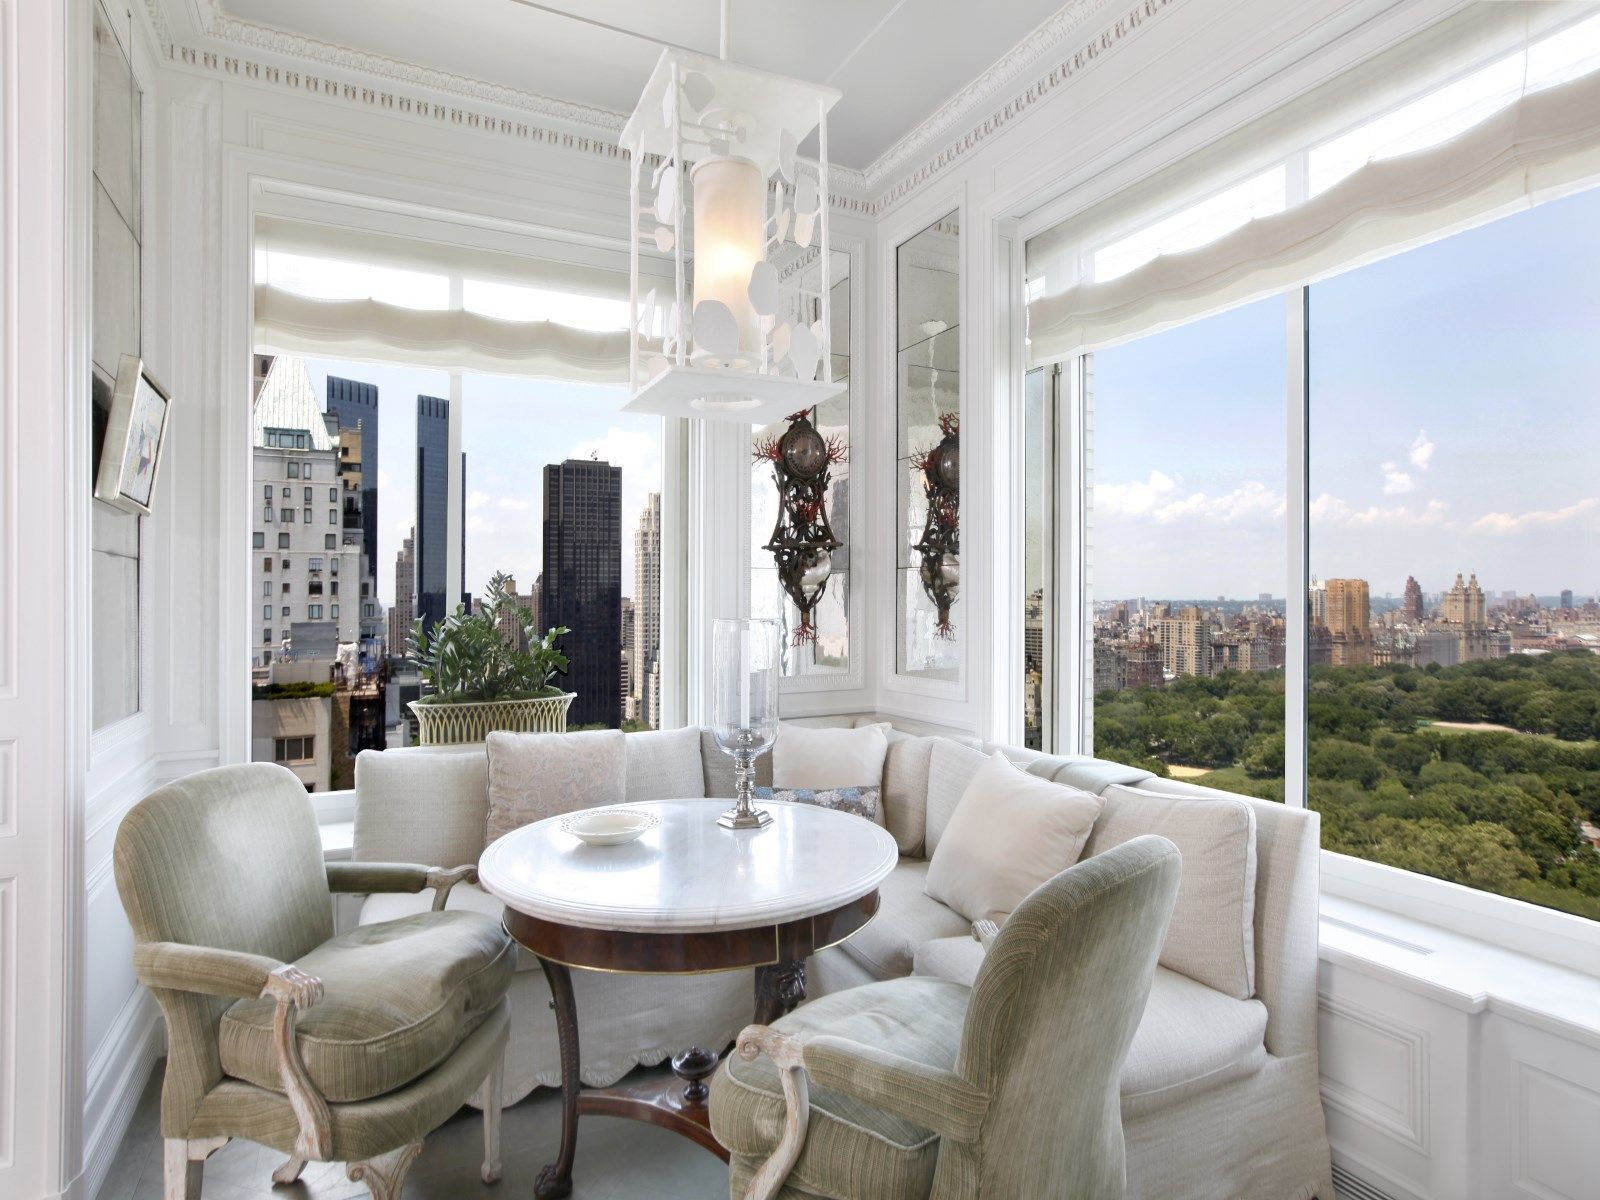 50 Central Park South Floor 33 New York Ny Condominium New York City Real Estate Luxury Homes Dream Houses Nyc Apartment Modern Breakfast Nook